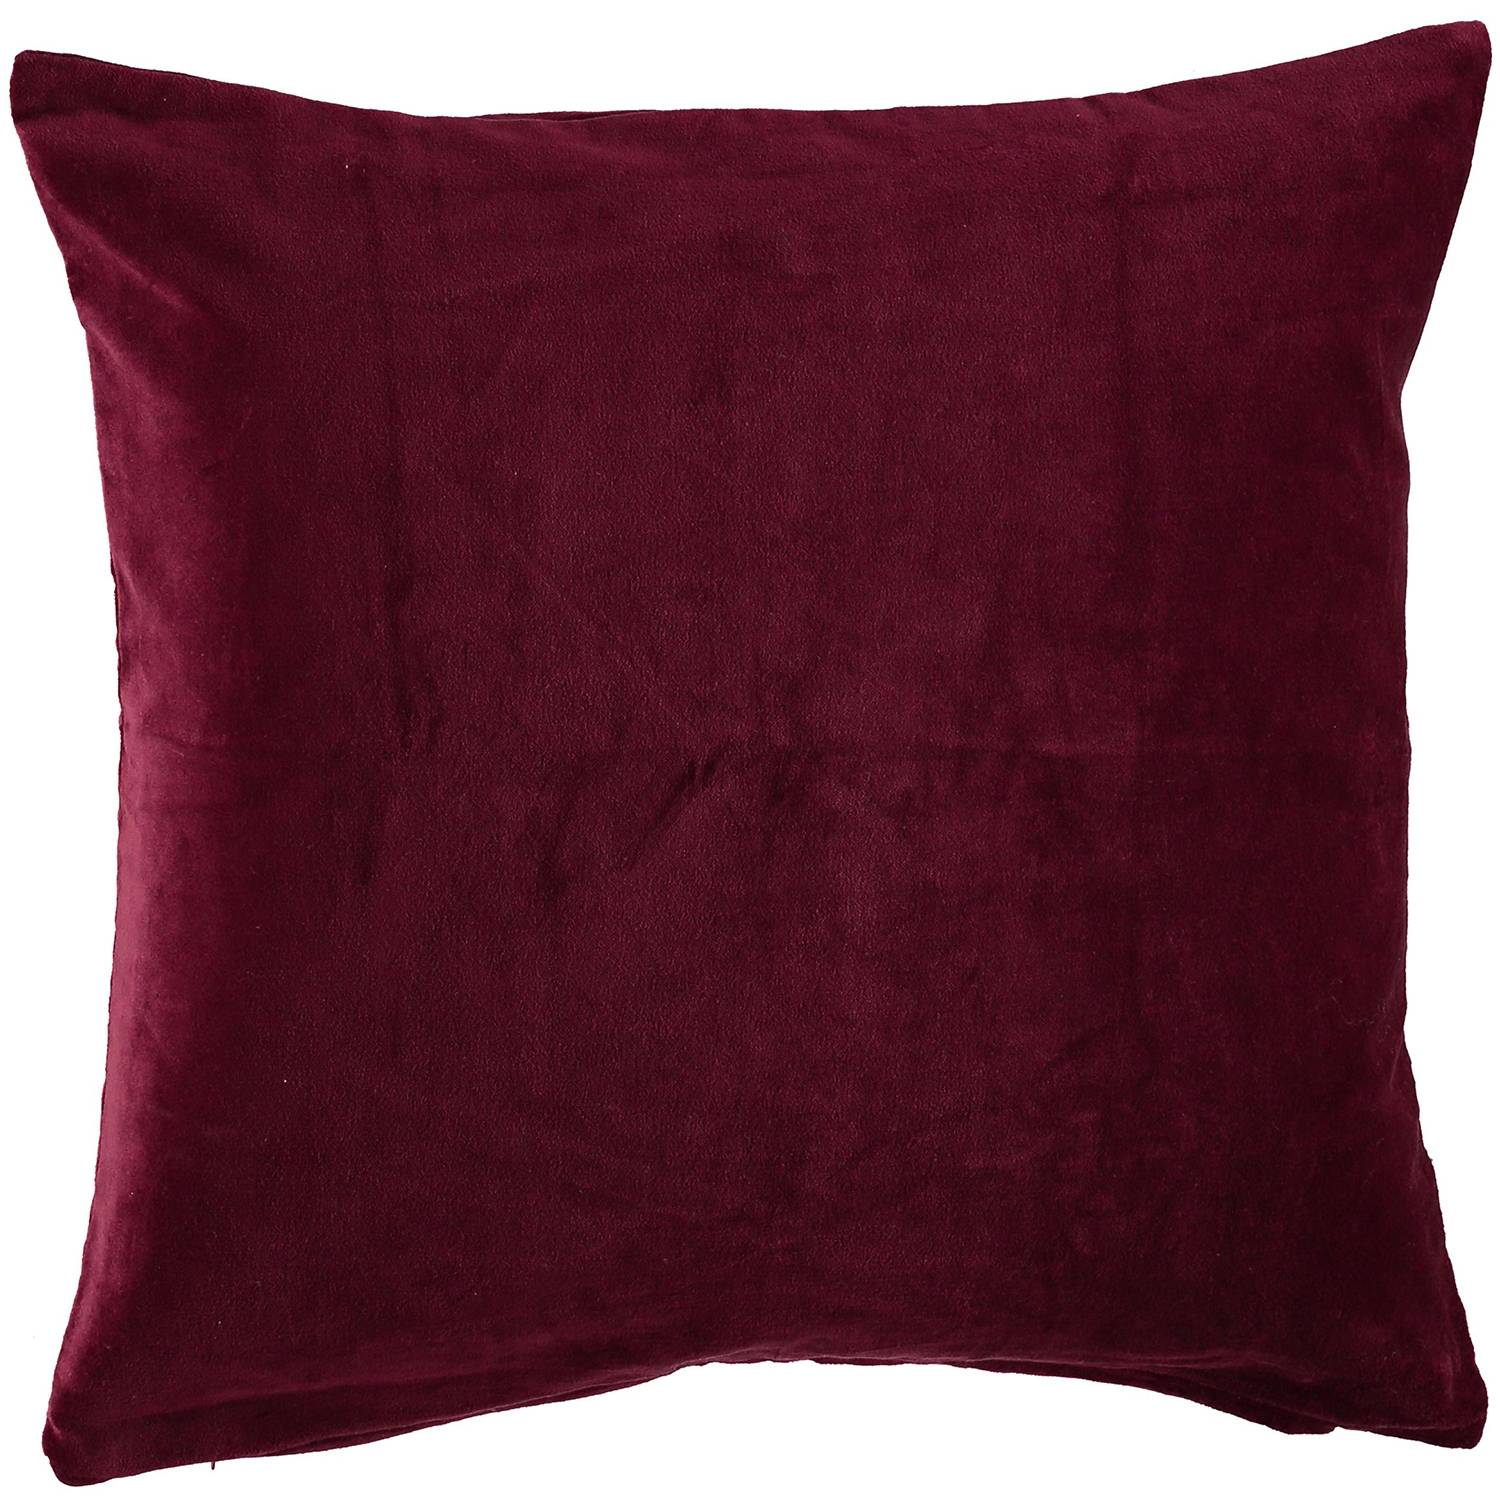 Gripsholm Ava Cushion Cover 50x50 cm, Burgundy